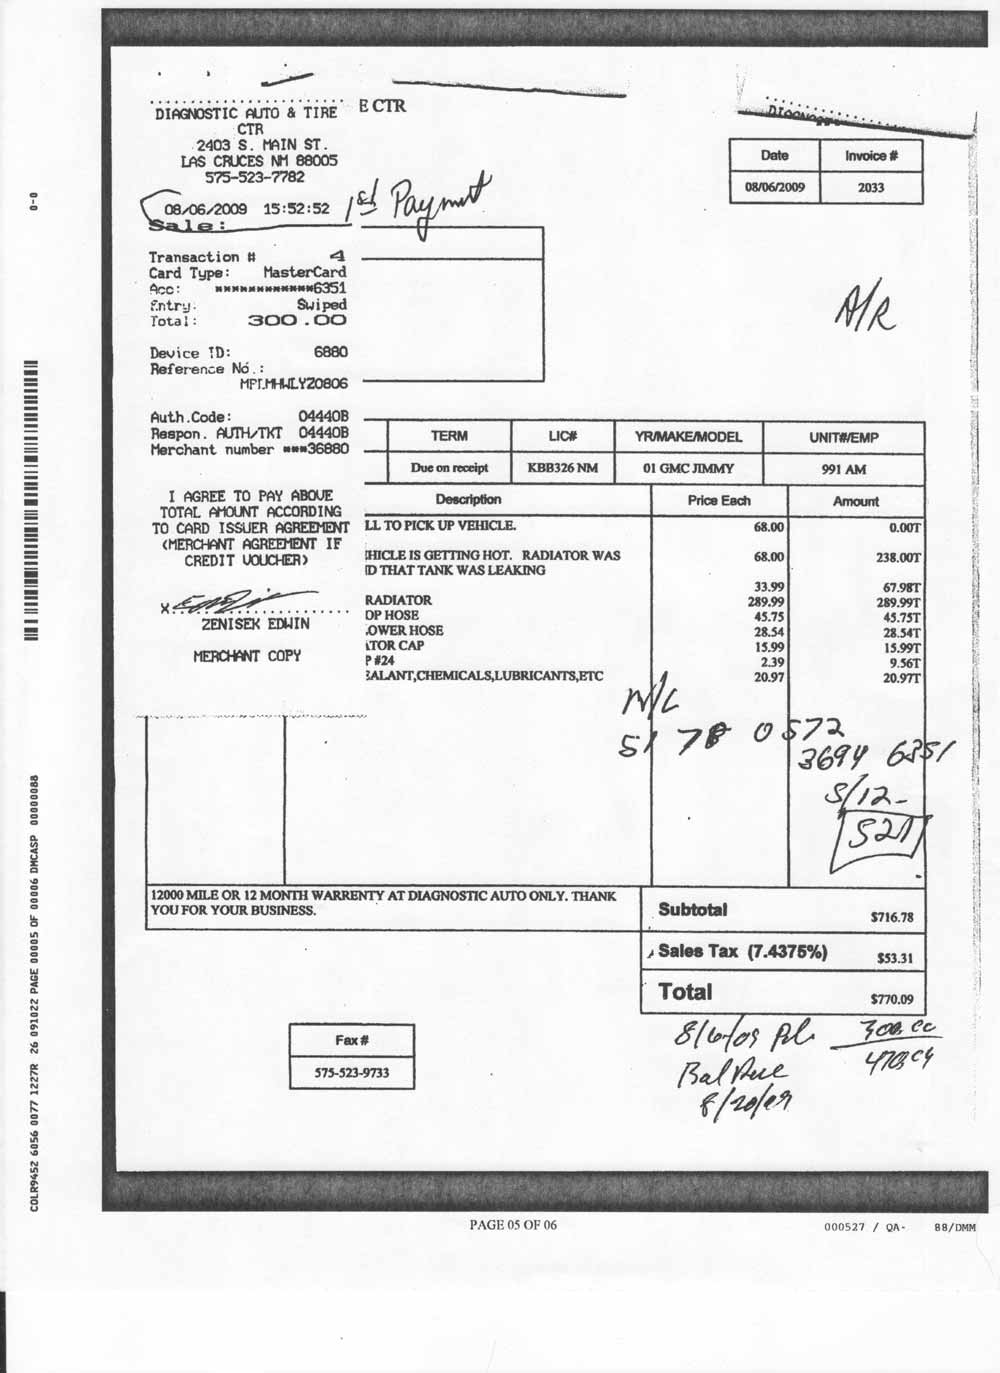 Diagnostic Auto And Tire Repair My Review Of A Mechanic And - Sample car repair invoice